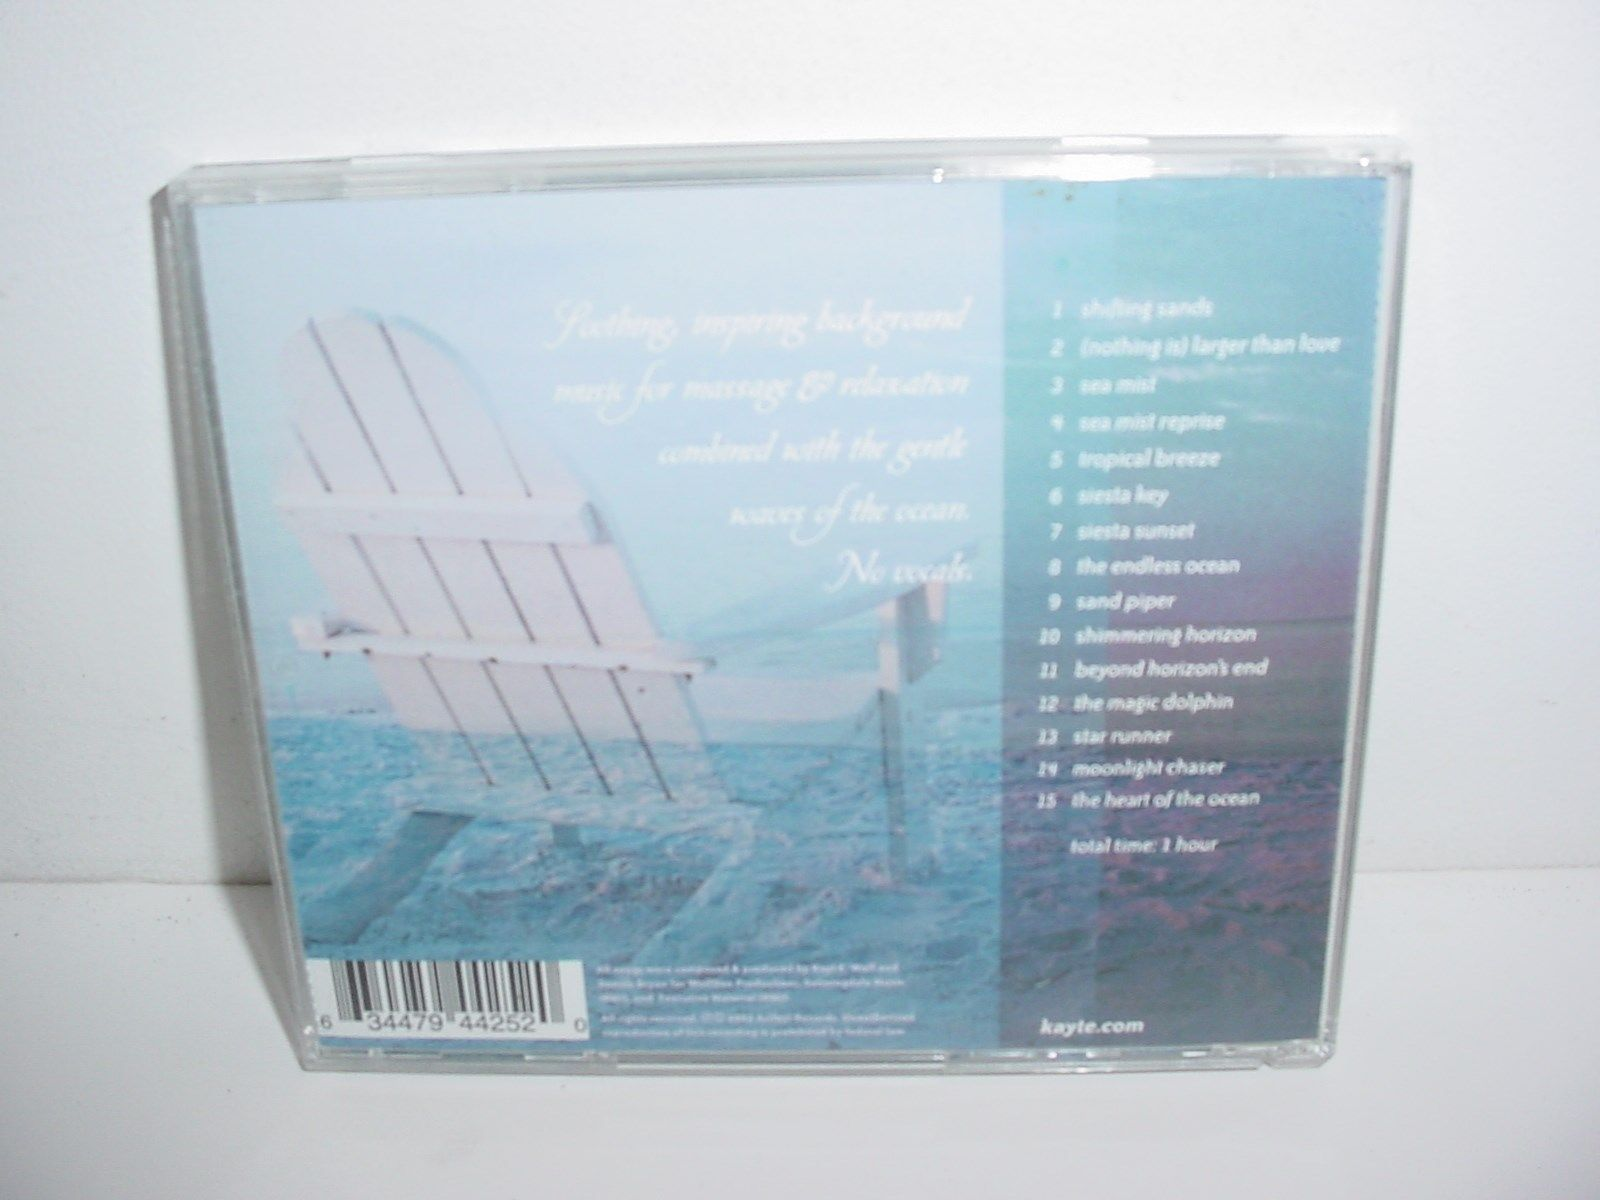 Heart of the Ocean by Strong & Bryon CD Music